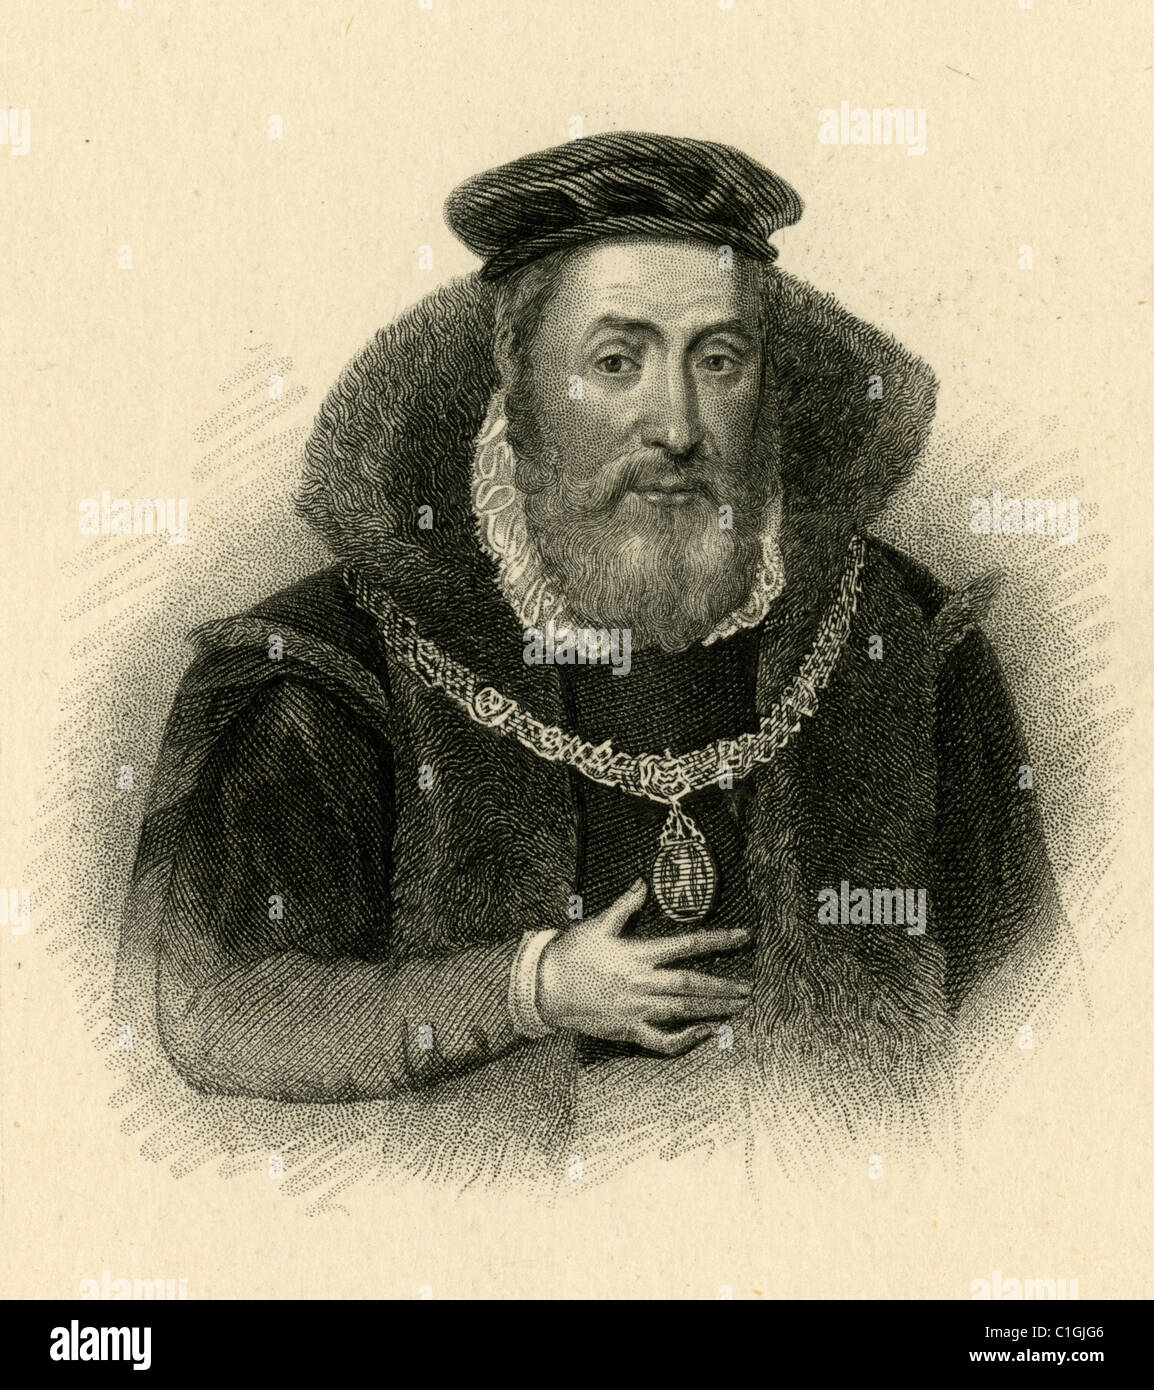 James Hamilton, Duke of Châtellerault and 2nd Earl of Arran (c. 1516 – 22 January 1575) was a Scottish nobleman. - Stock Image